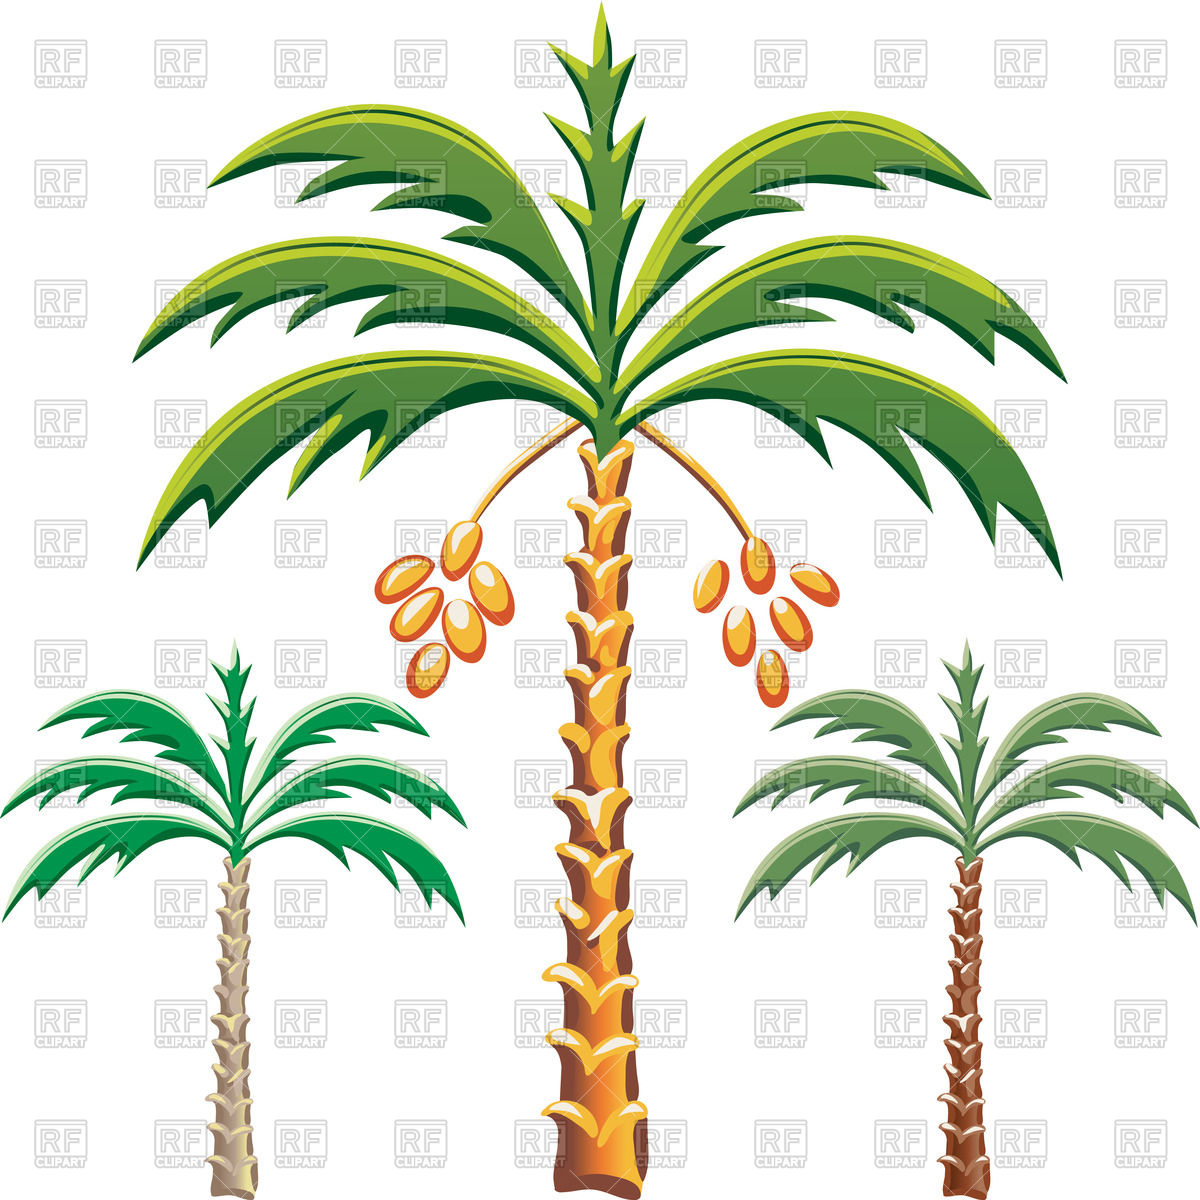 Date palm trees Vector Image u2013 Vector Illustration of Plants and Animals ©  volhakavalenkava #45315 Click to Zoom